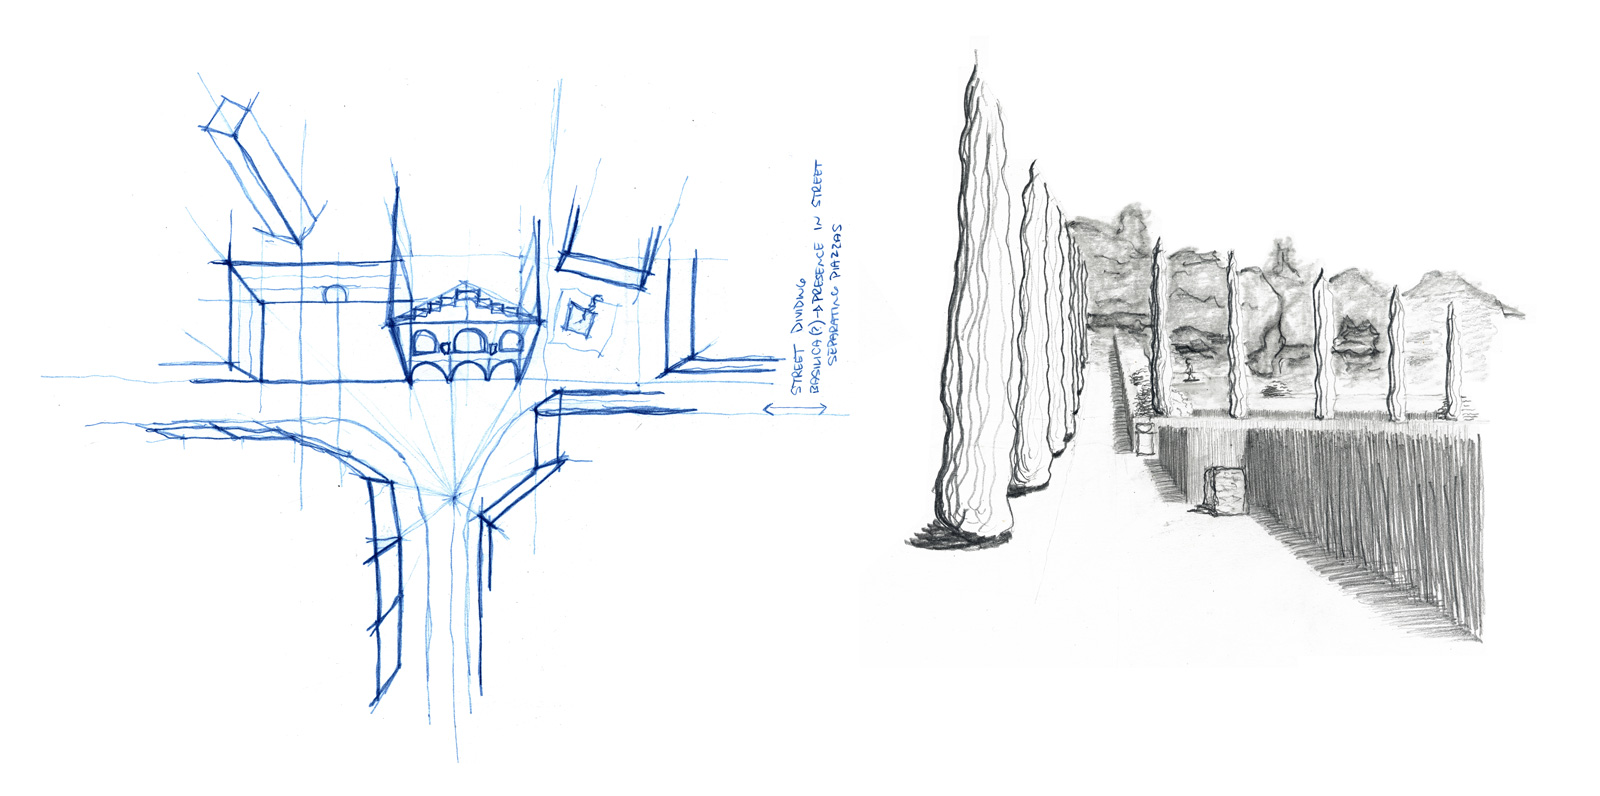 City mapping (left) and Garden Giusti (right), both in Verona